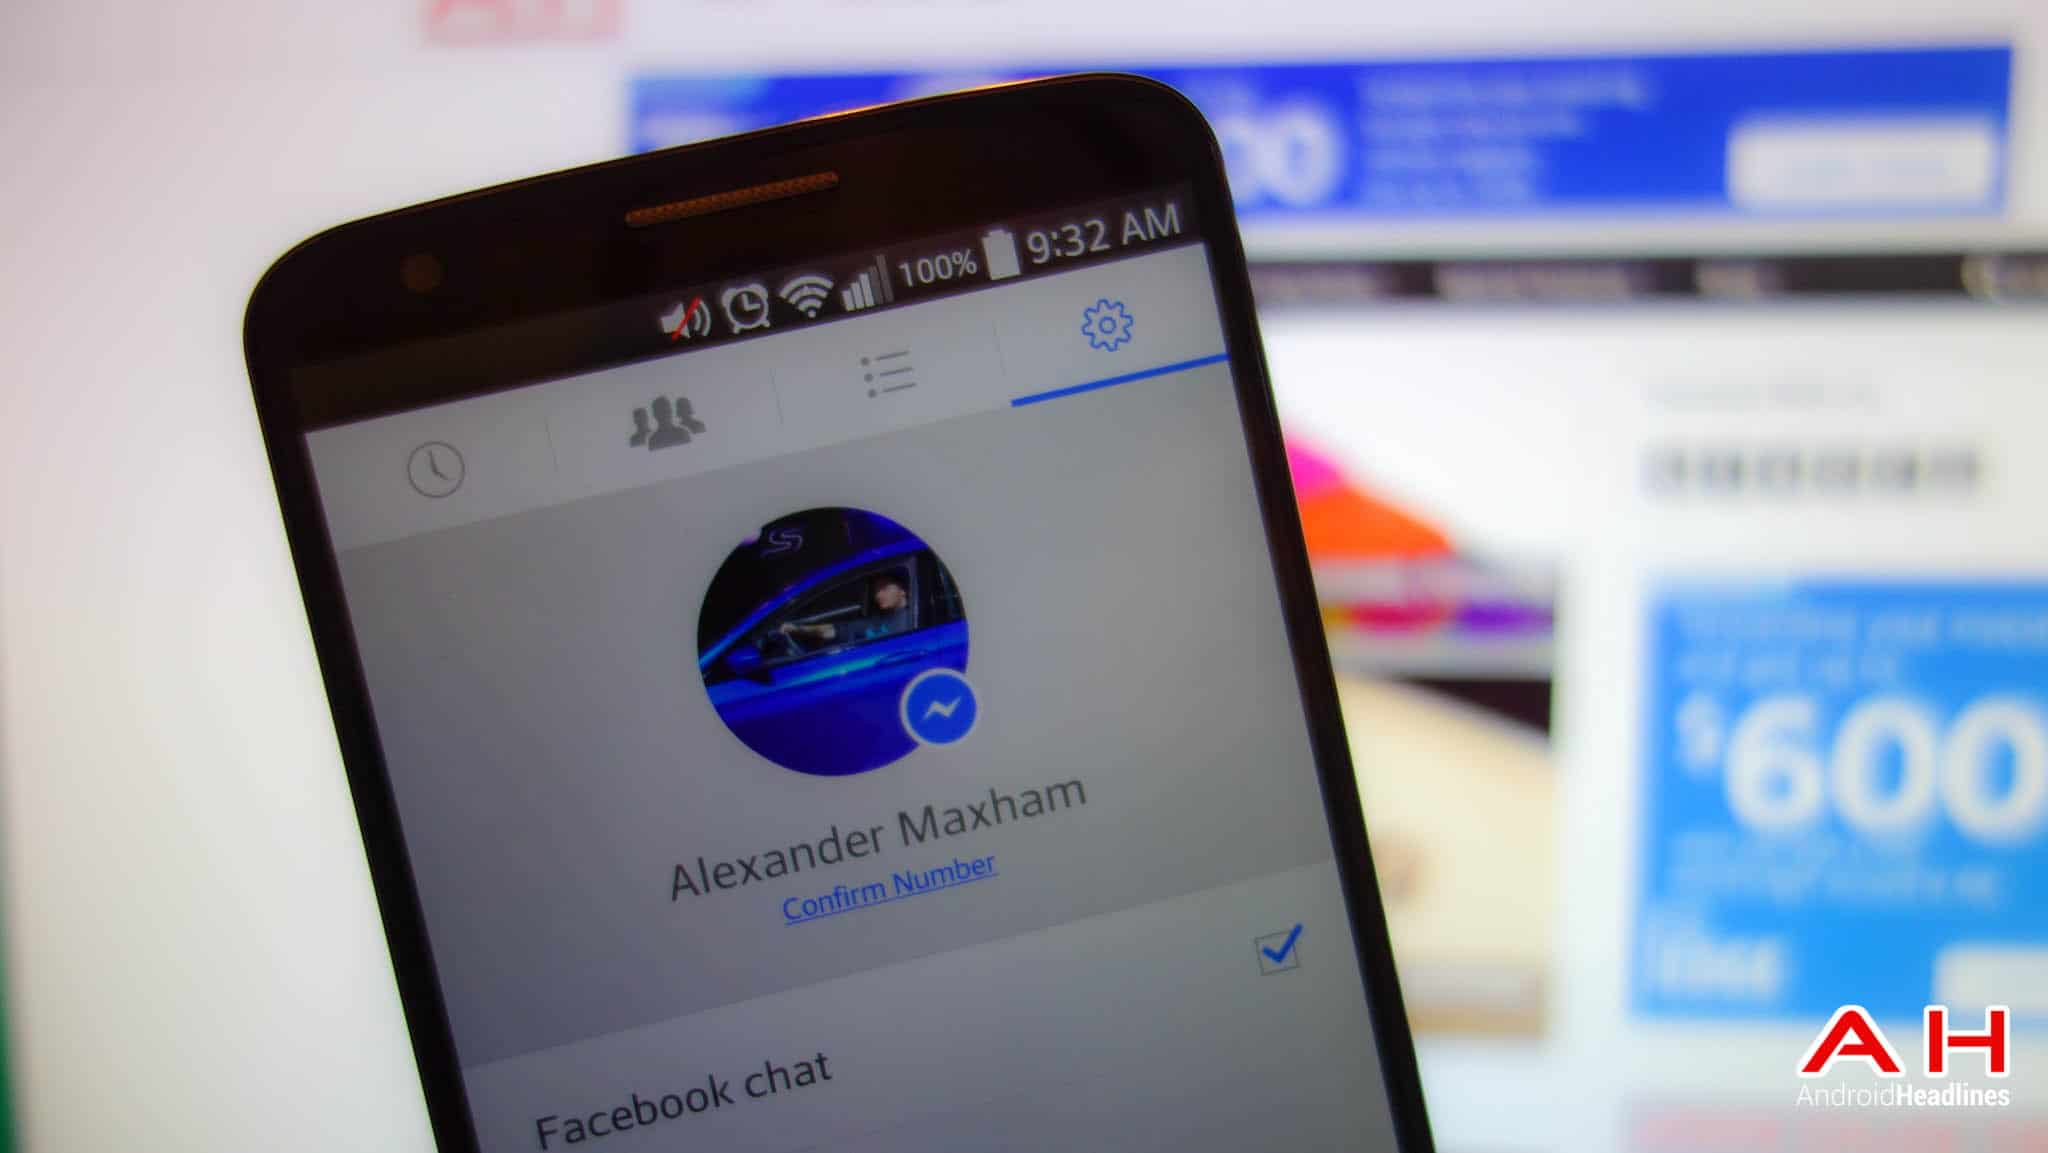 Facebook-Messenger-AH-1